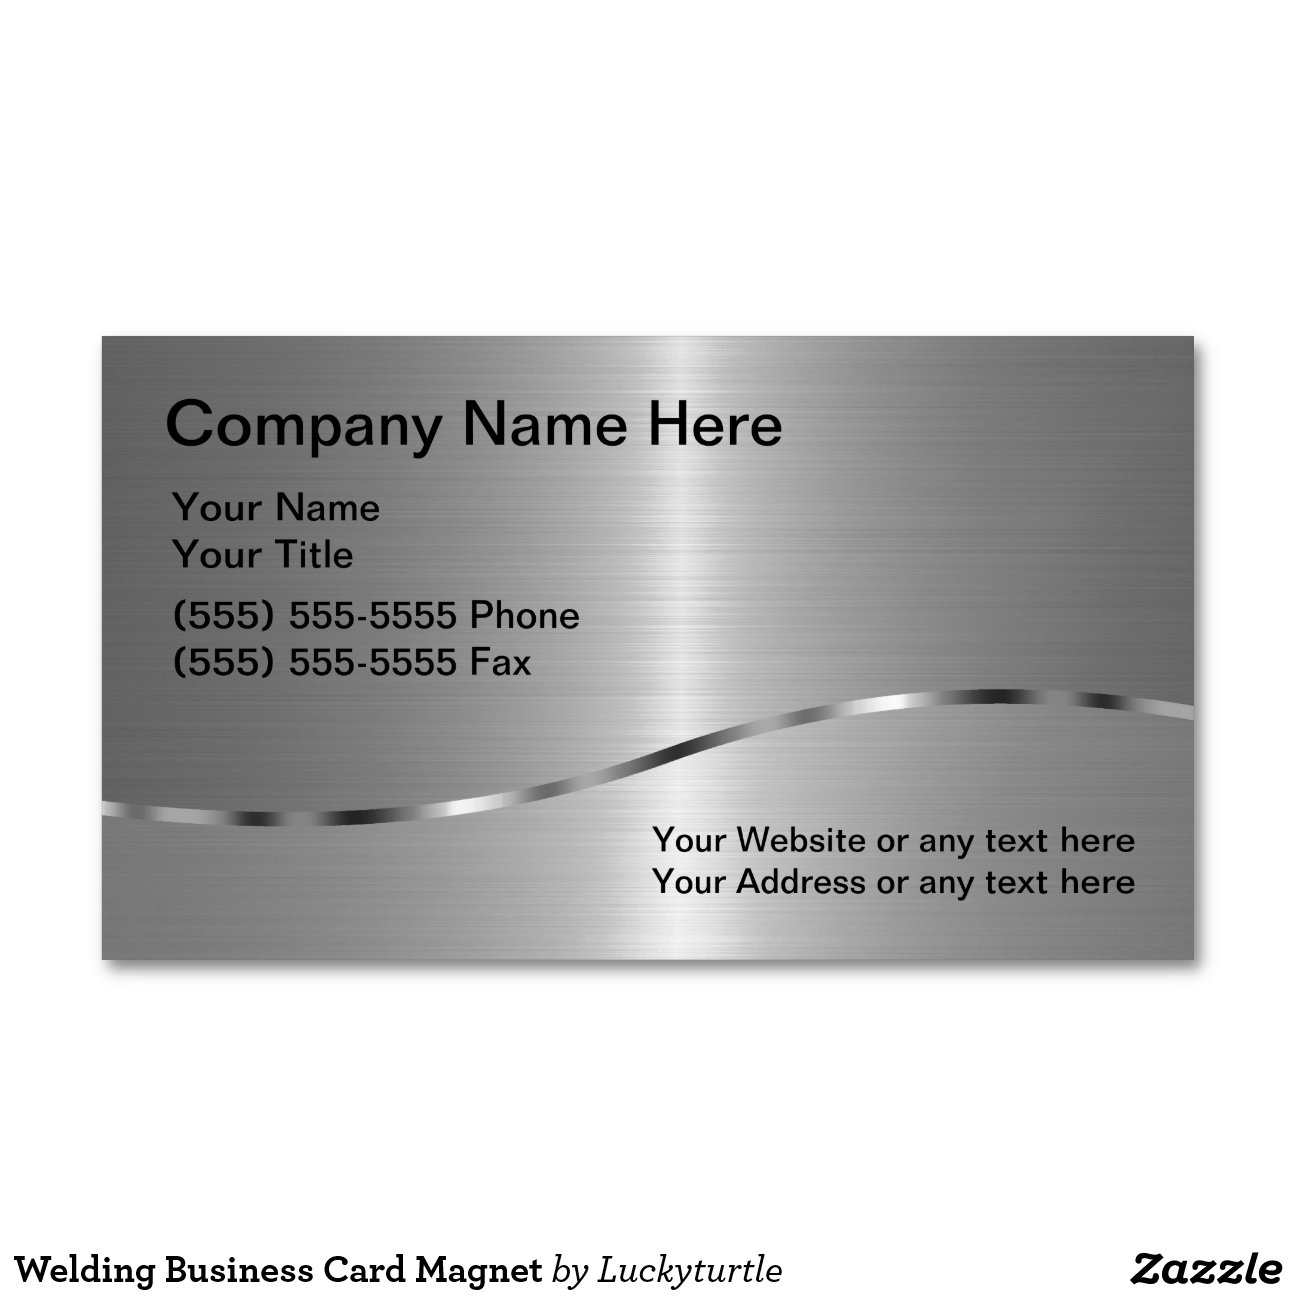 new pictures of welding business cards business